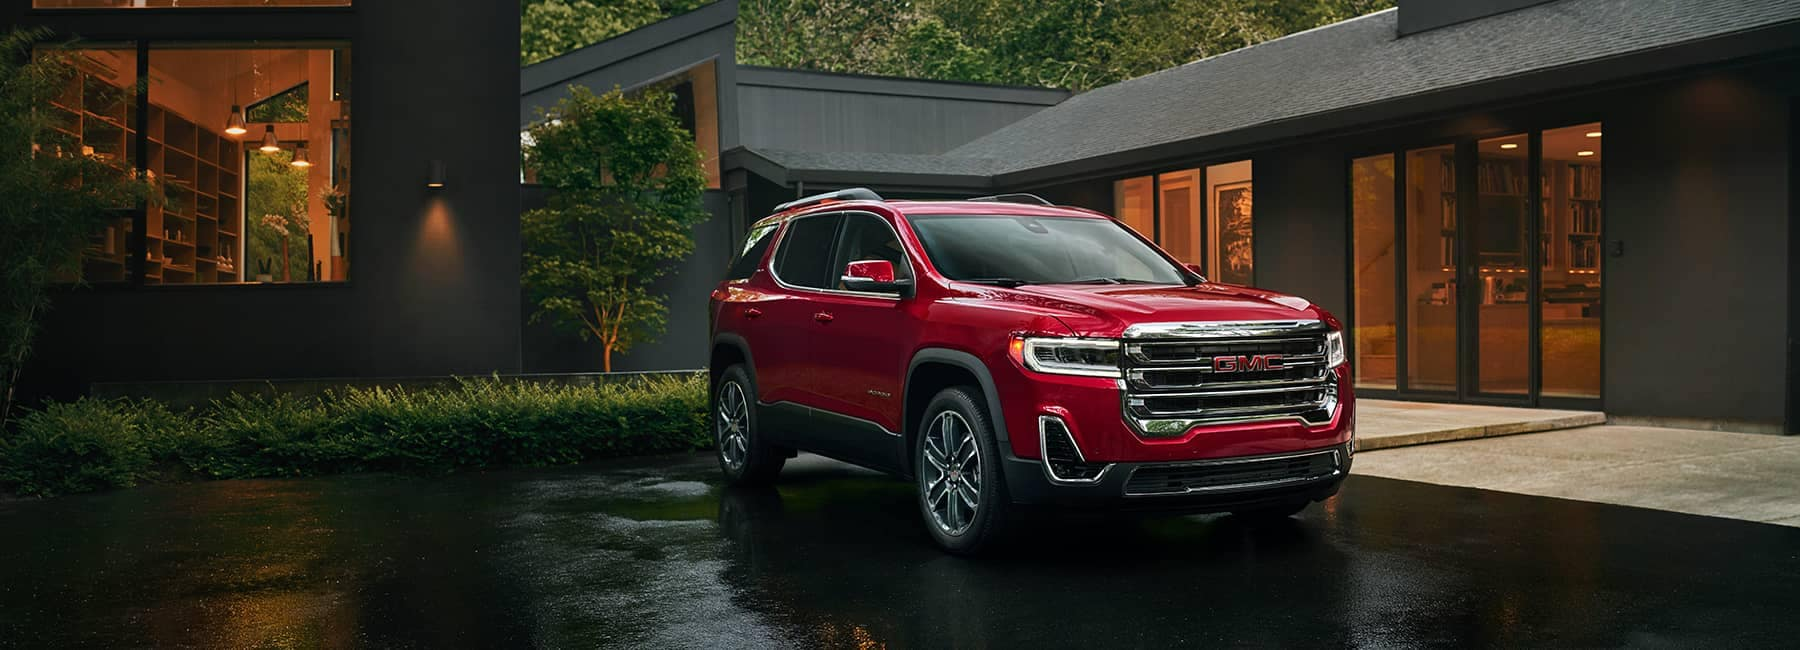 Red 2020 GMC Acadia